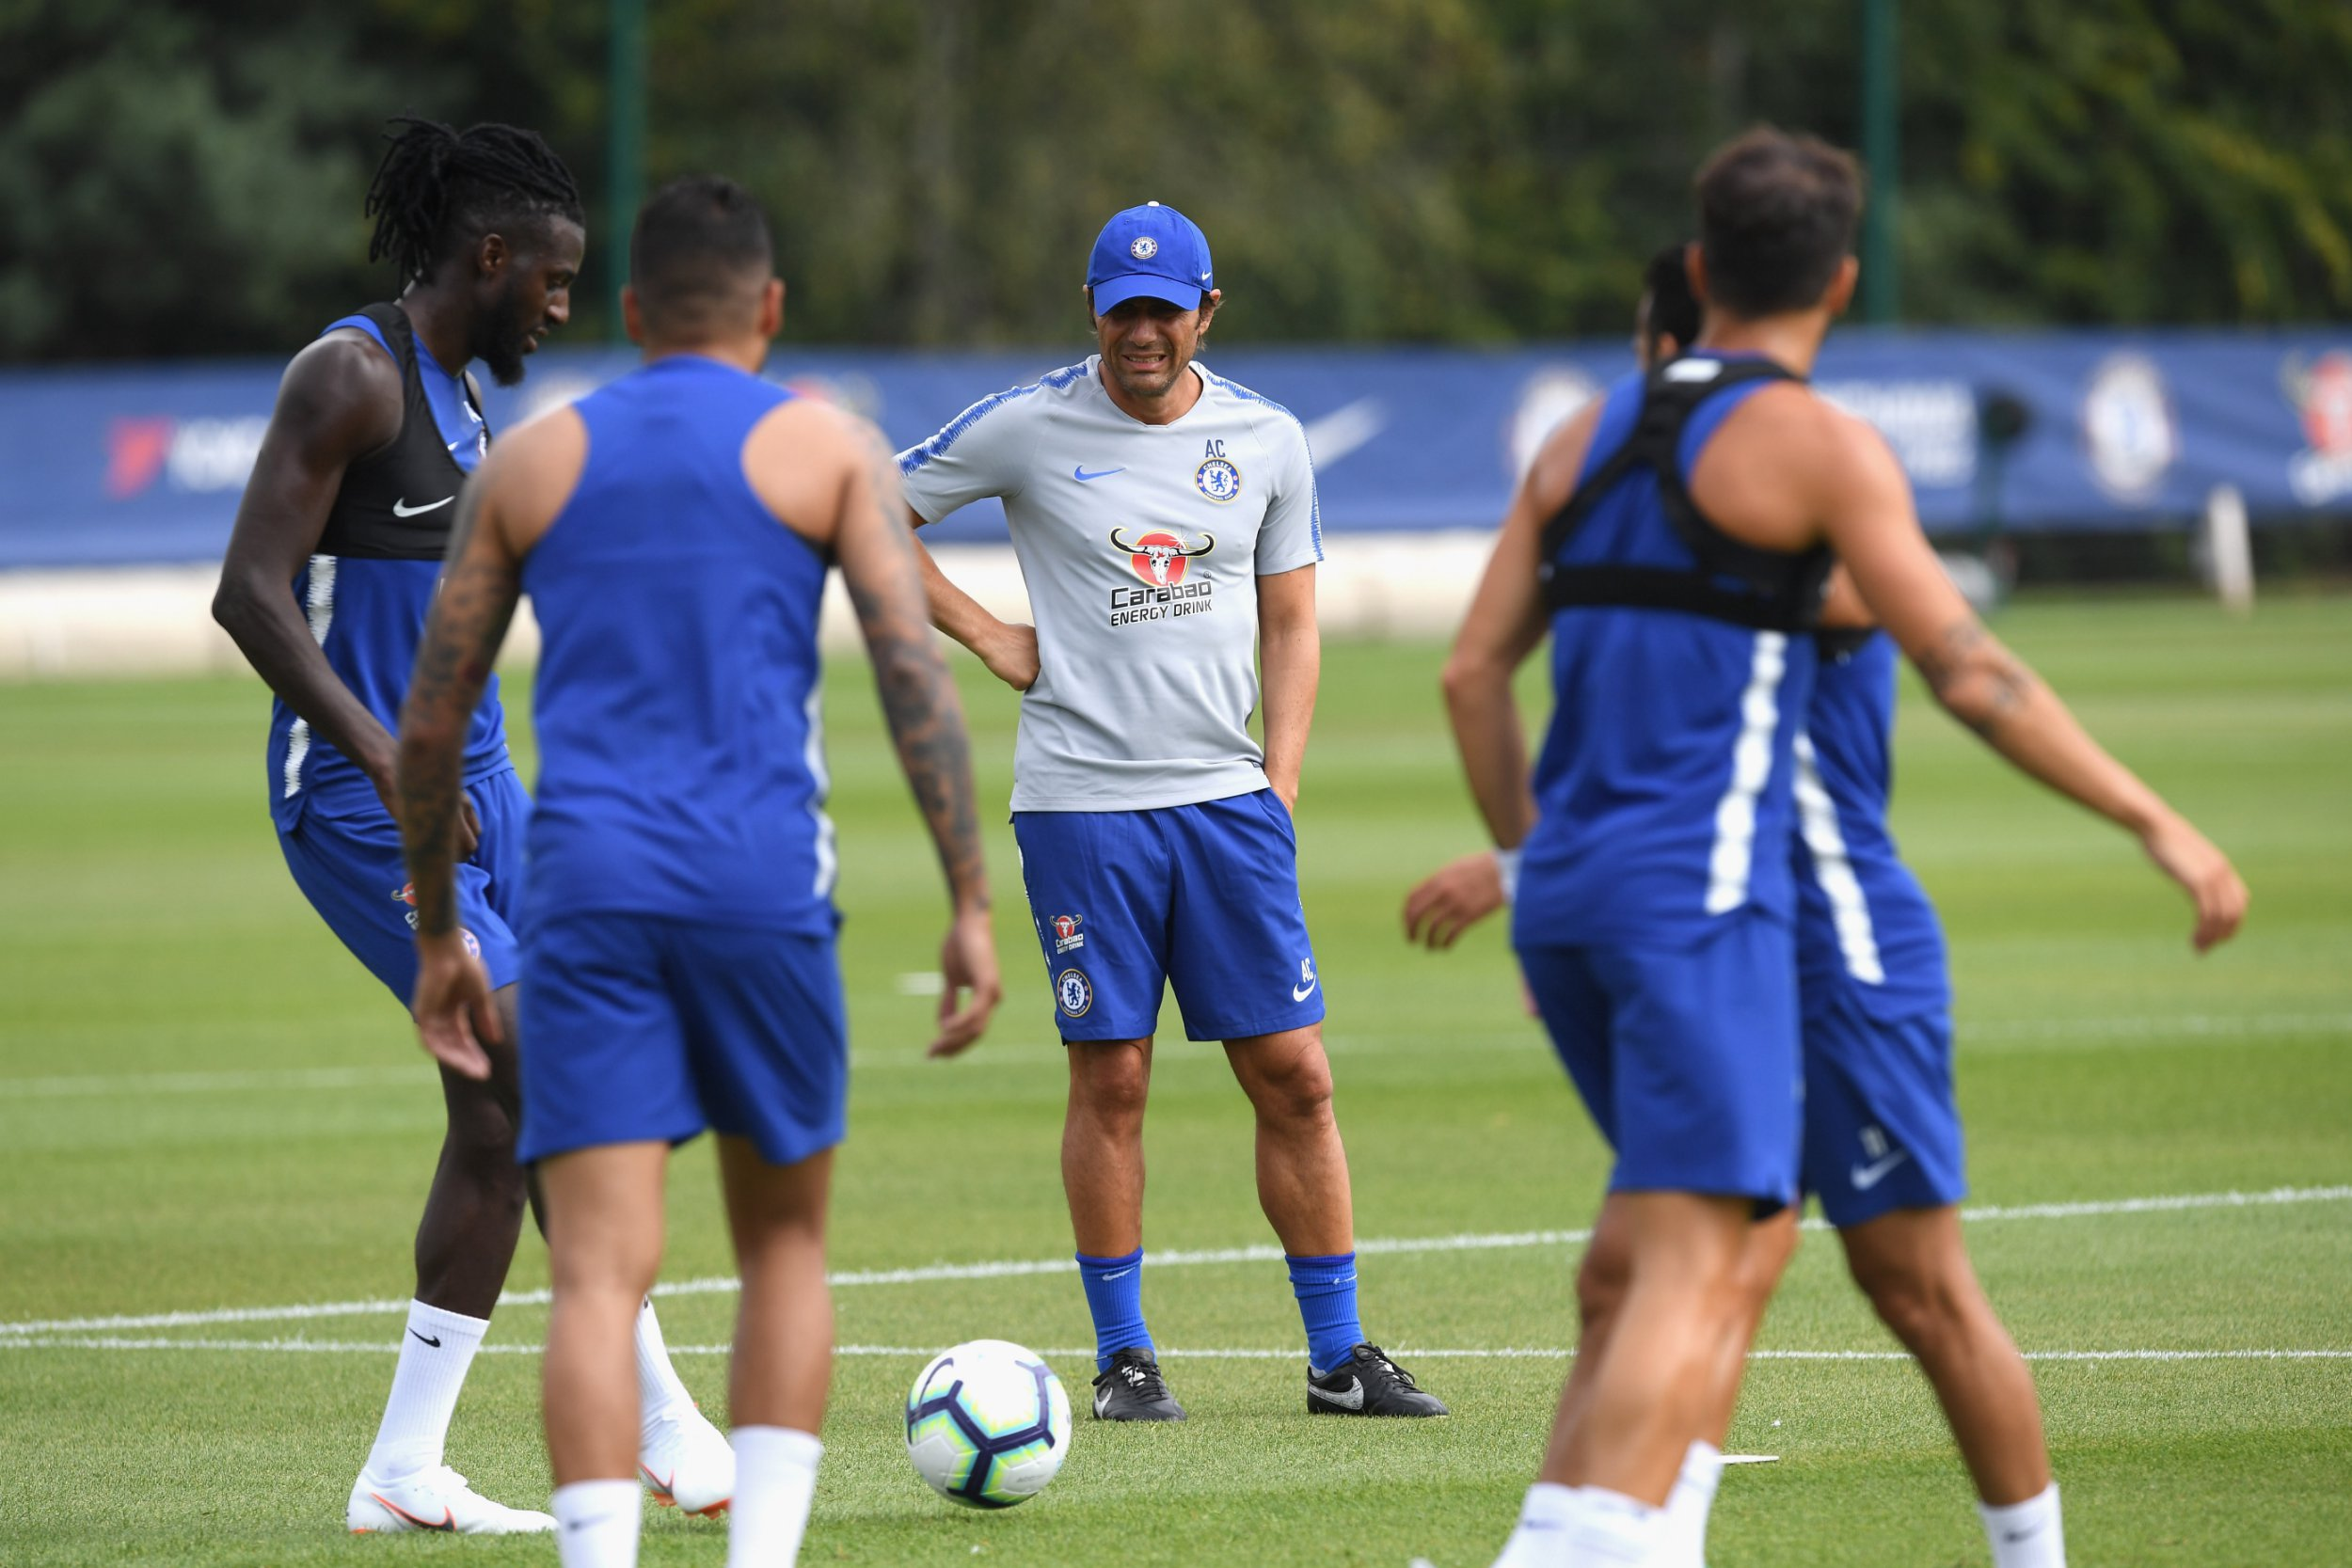 COBHAM, ENGLAND - JULY 09: Antonio Conte of Chelsea during a training session at Chelsea Training Ground on July 9, 2018 in Cobham, England. (Photo by Darren Walsh/Chelsea FC via Getty Images)